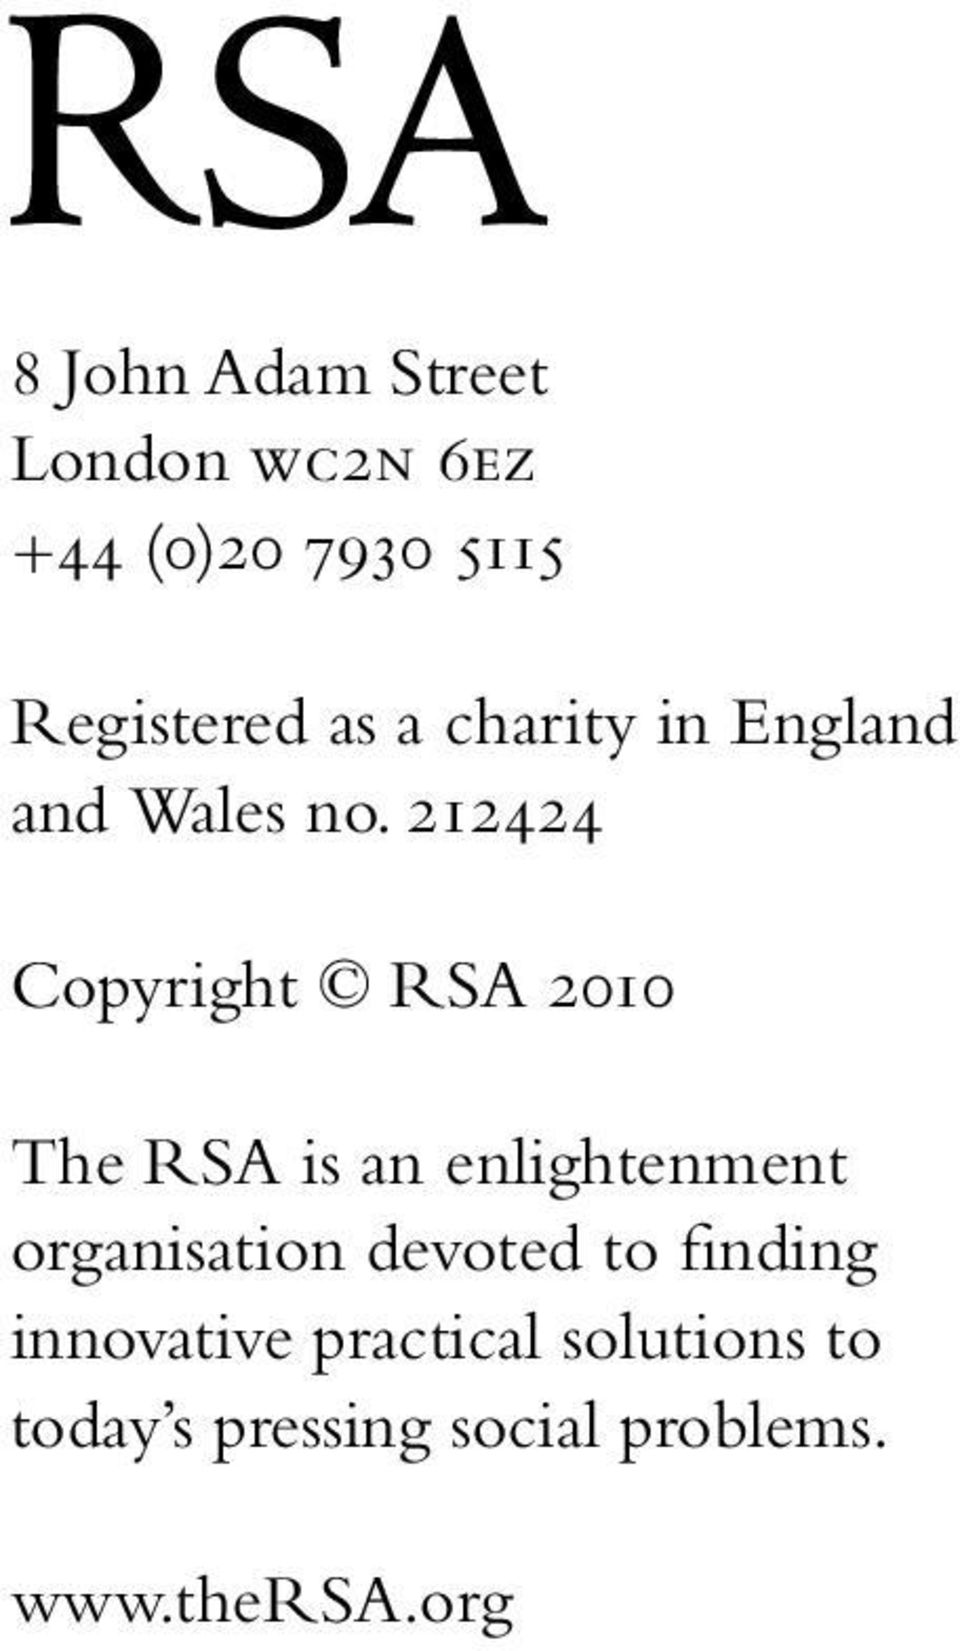 212424 Copyright RSA 2010 The RSA is an enlightenment organisation